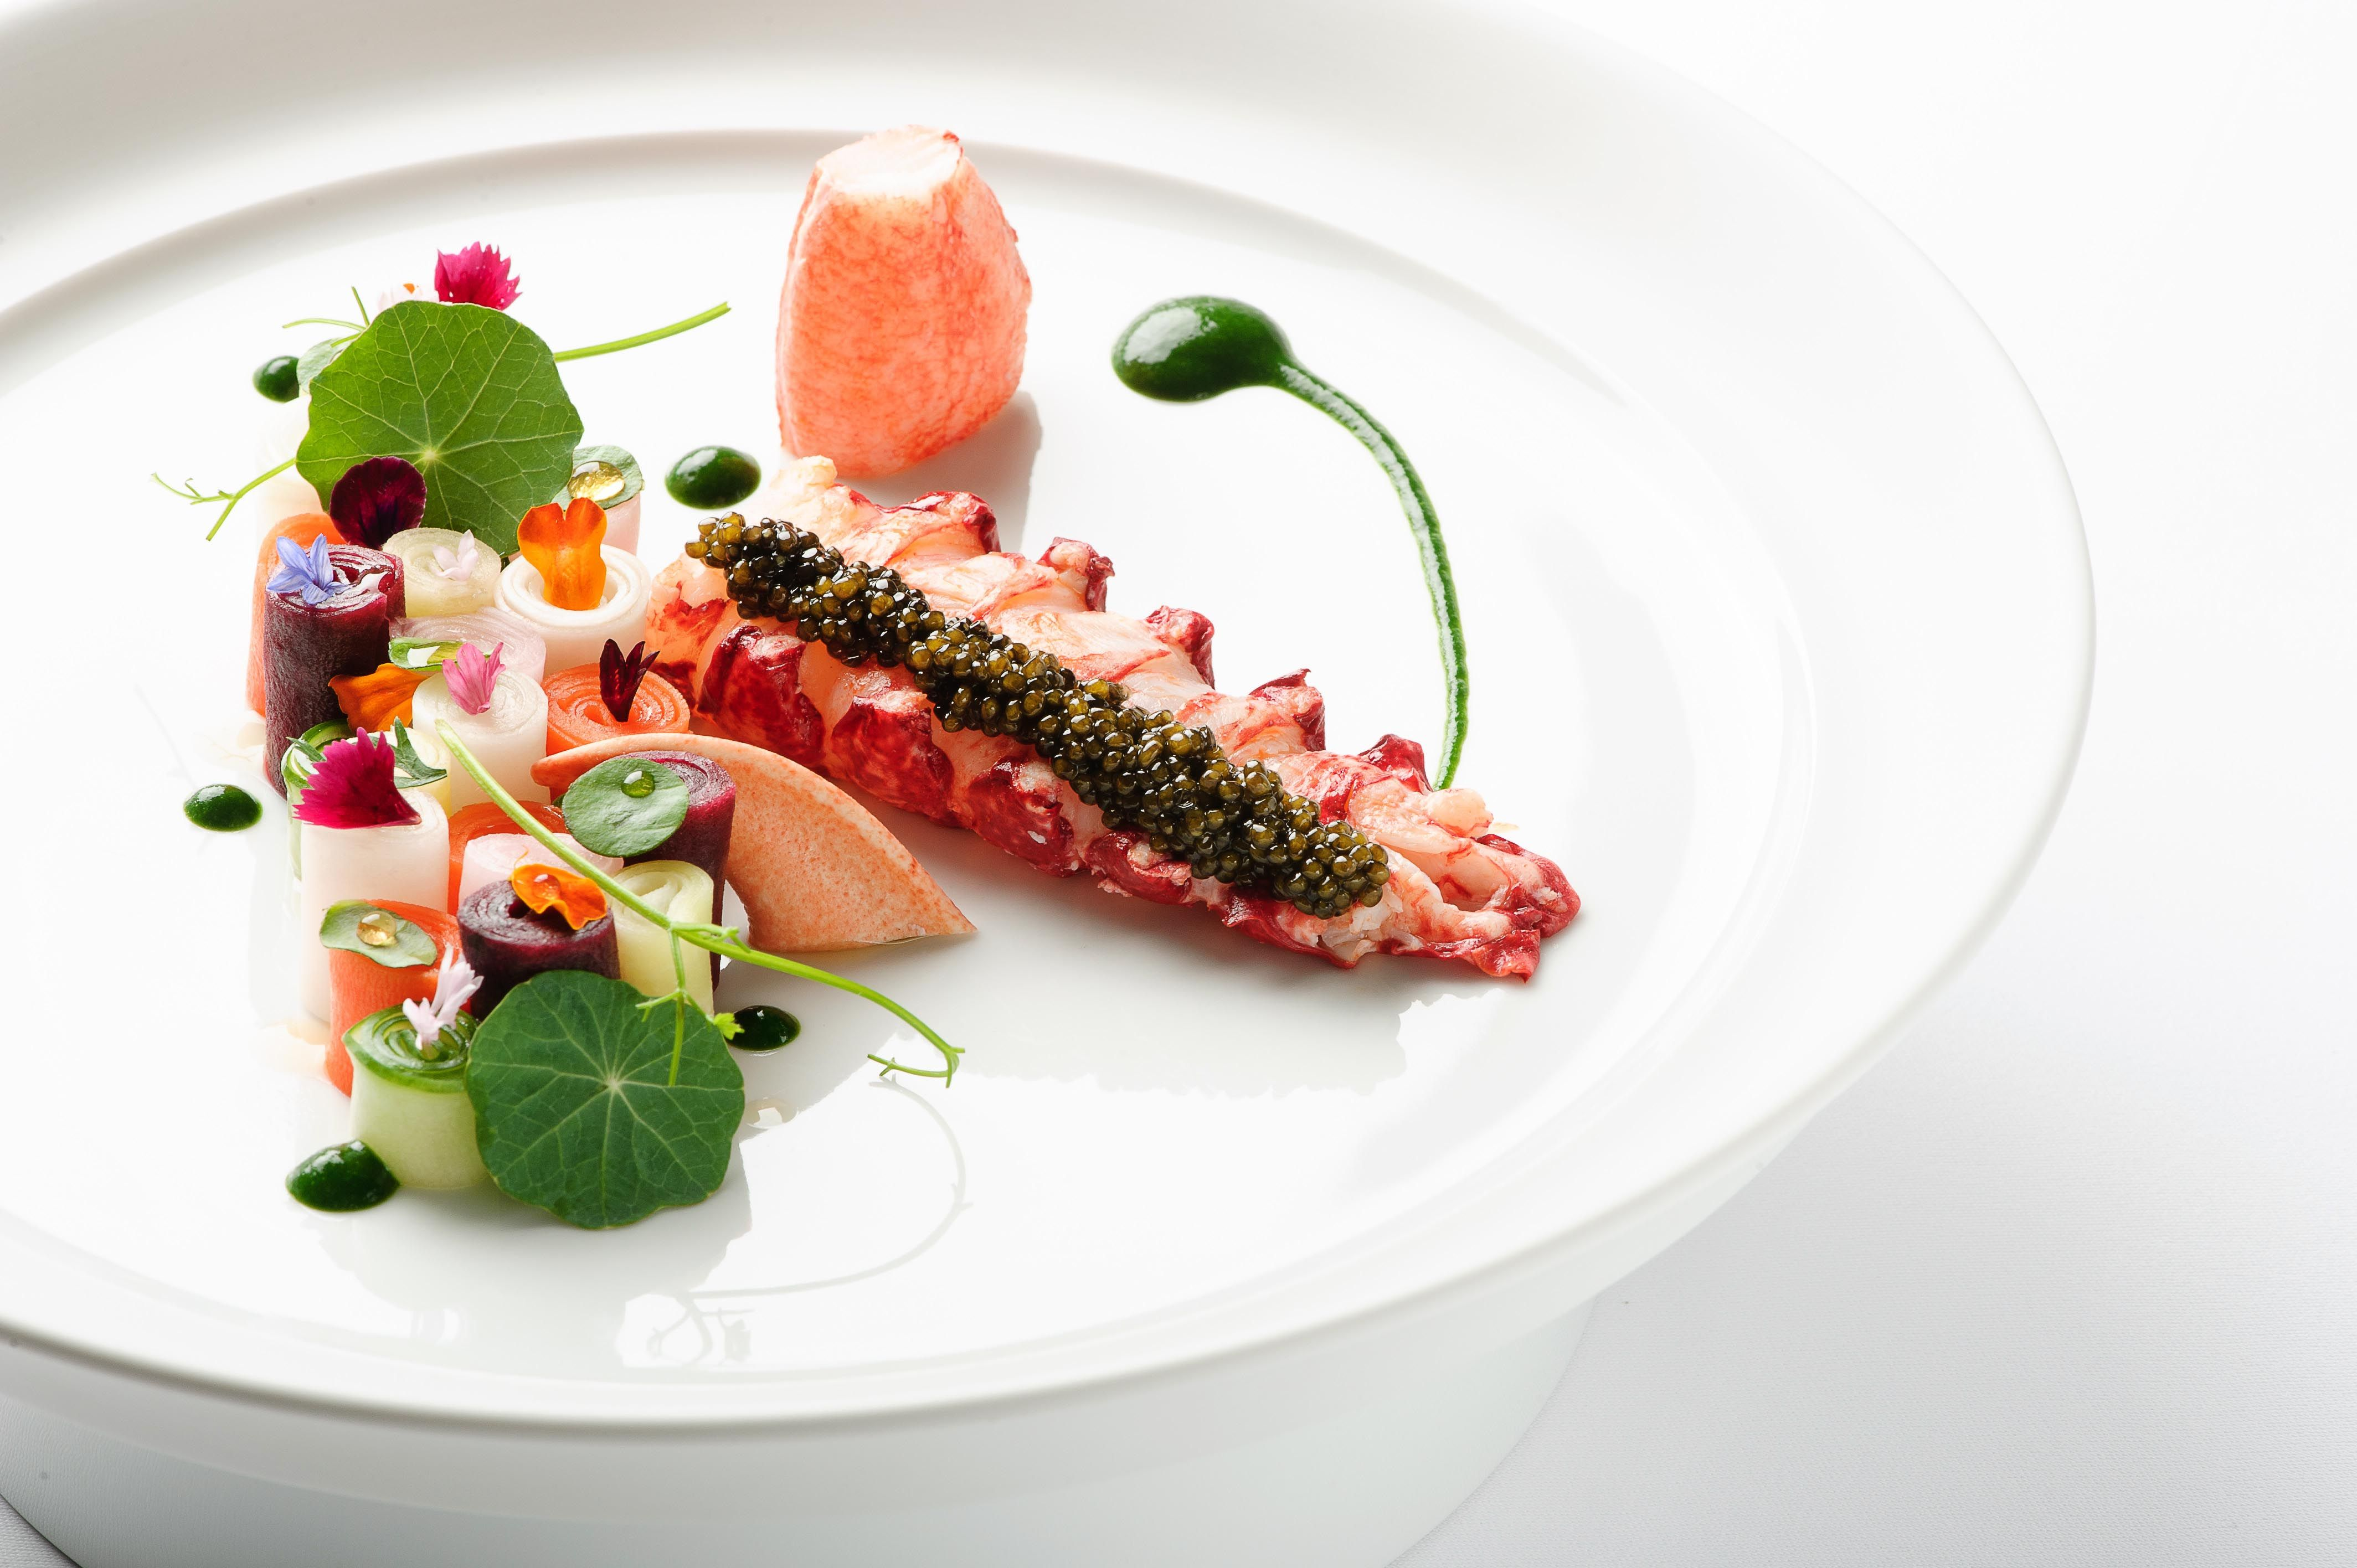 The Mandarin Grill S Lobster Dish Is A Magical Collection Of Colours And Ingredients Buttered Poached Lobst Delicious Lobster Dishes Butter Poached Lobster